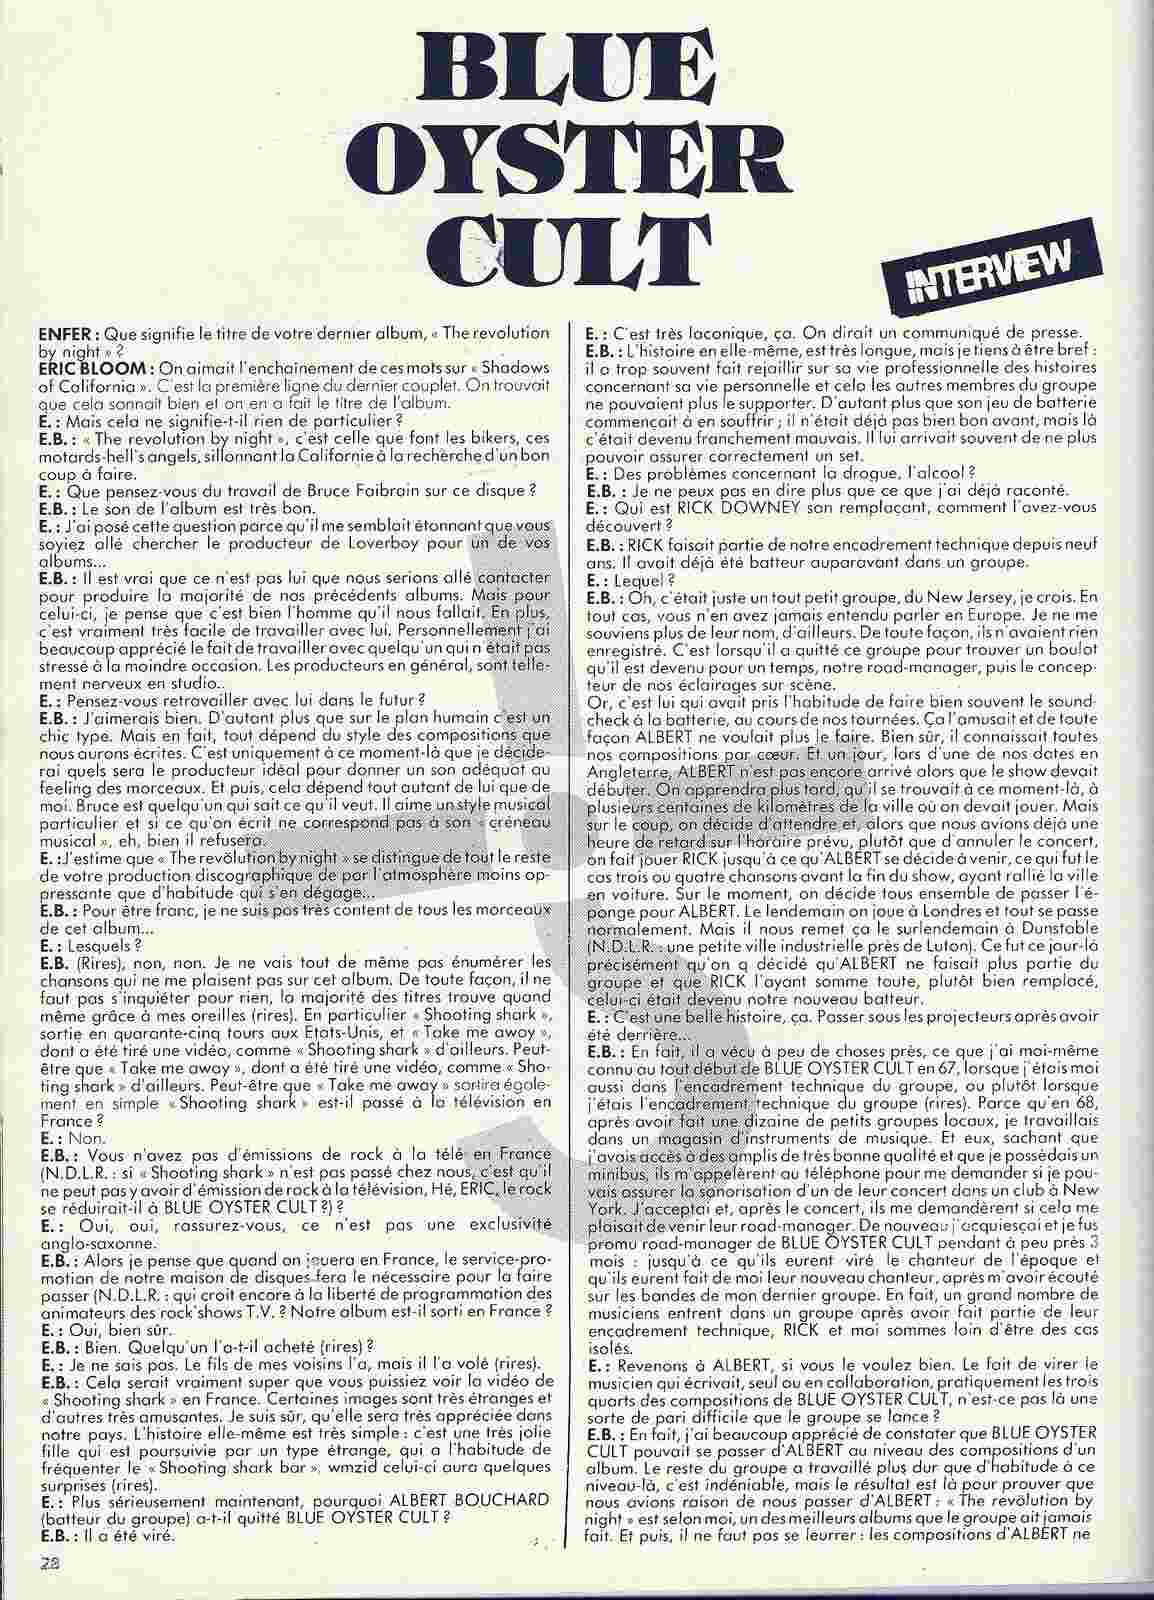 Interview BLUE ÖYSTER CULT (Enfer Magazine Février 1986) Archive à lire Numyri32